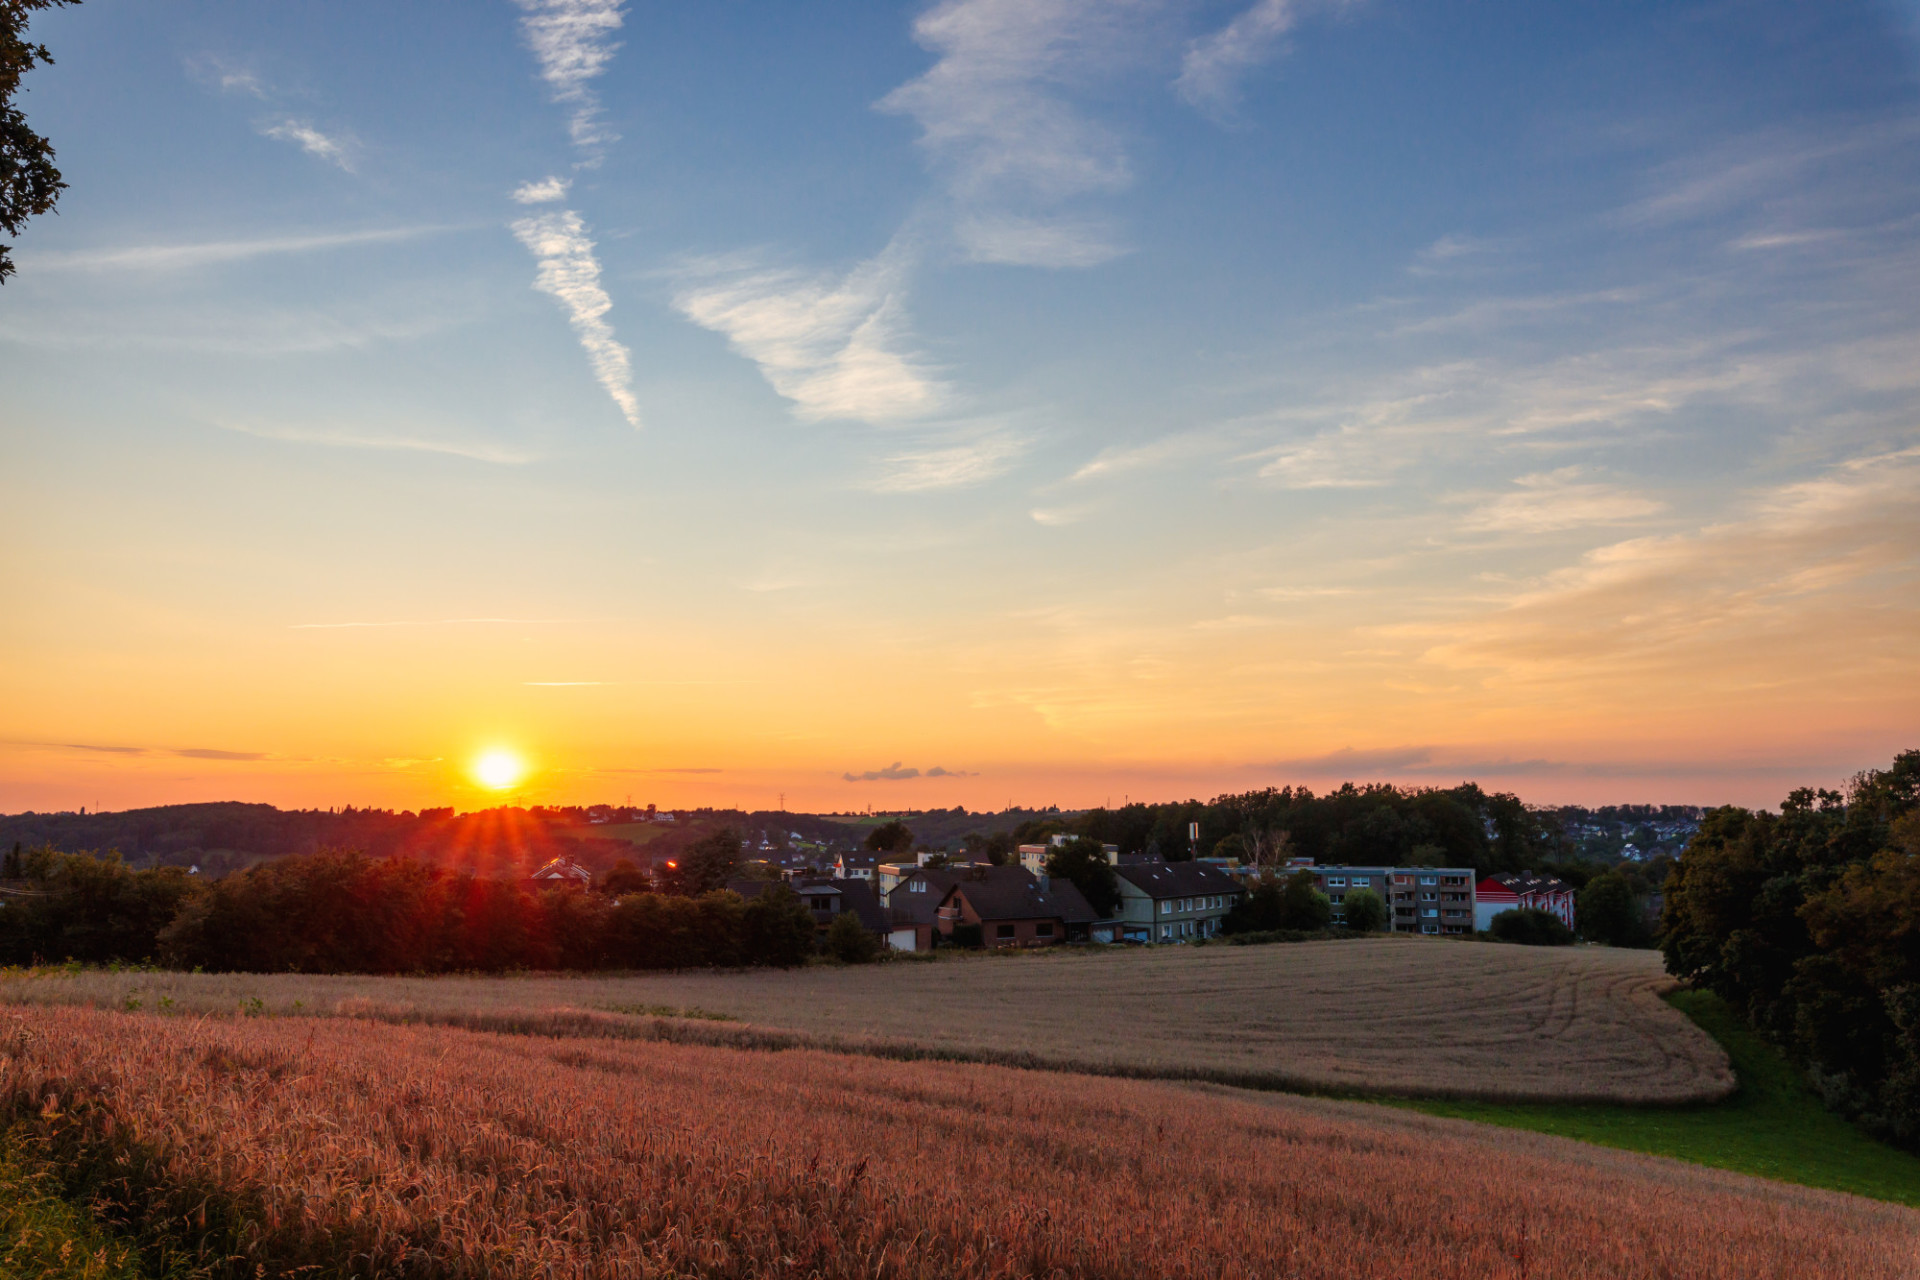 Sunset over a village in germany